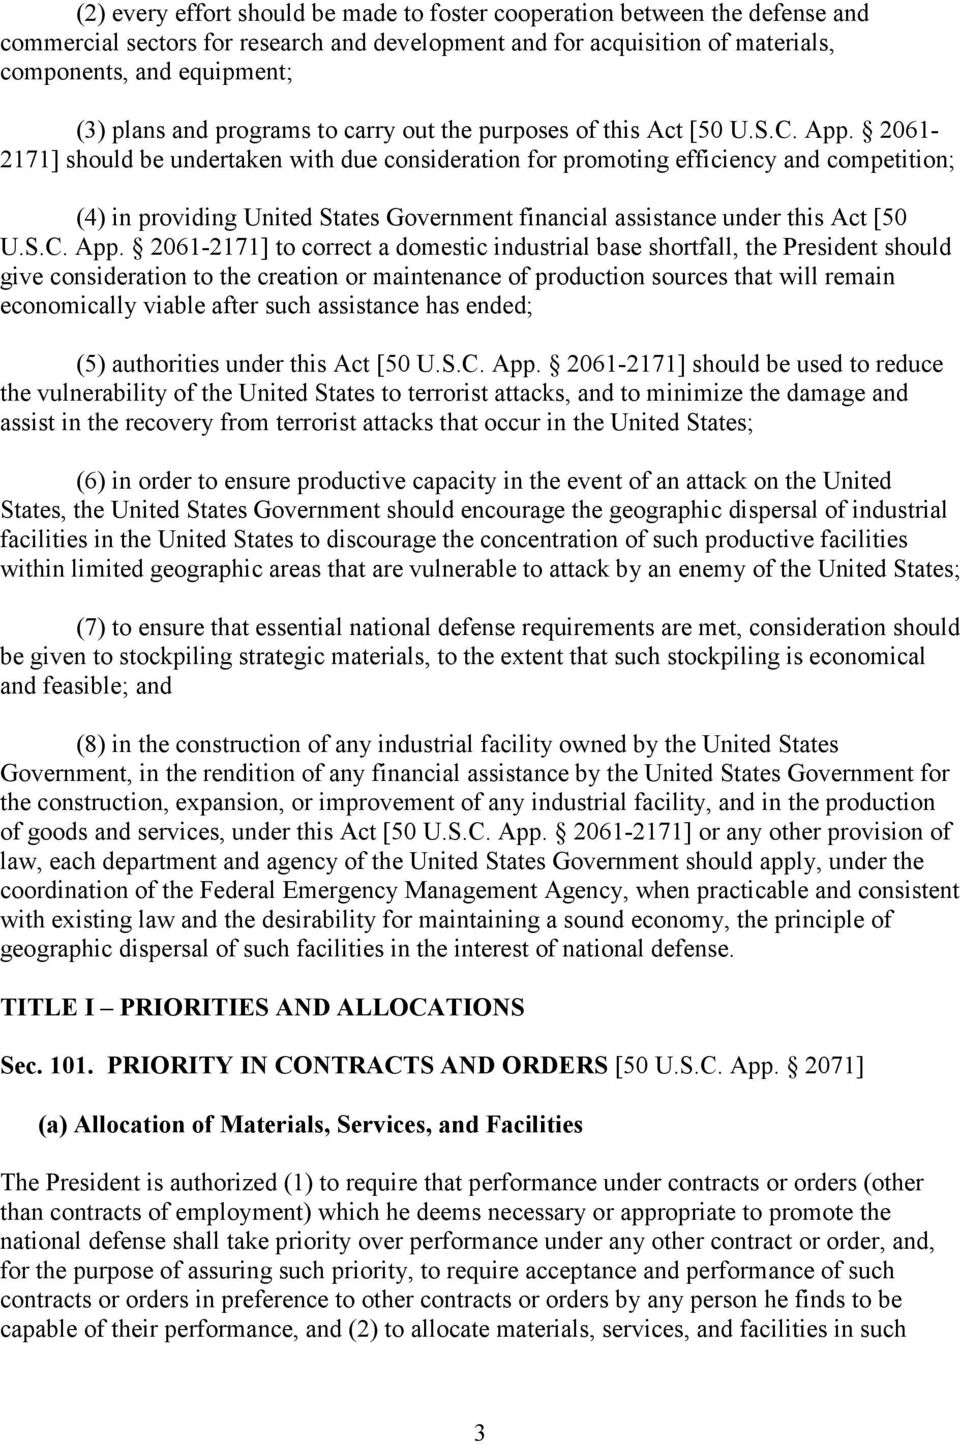 2061-2171] should be undertaken with due consideration for promoting efficiency and competition; (4) in providing United States Government financial assistance under this Act [50 U.S.C. App.